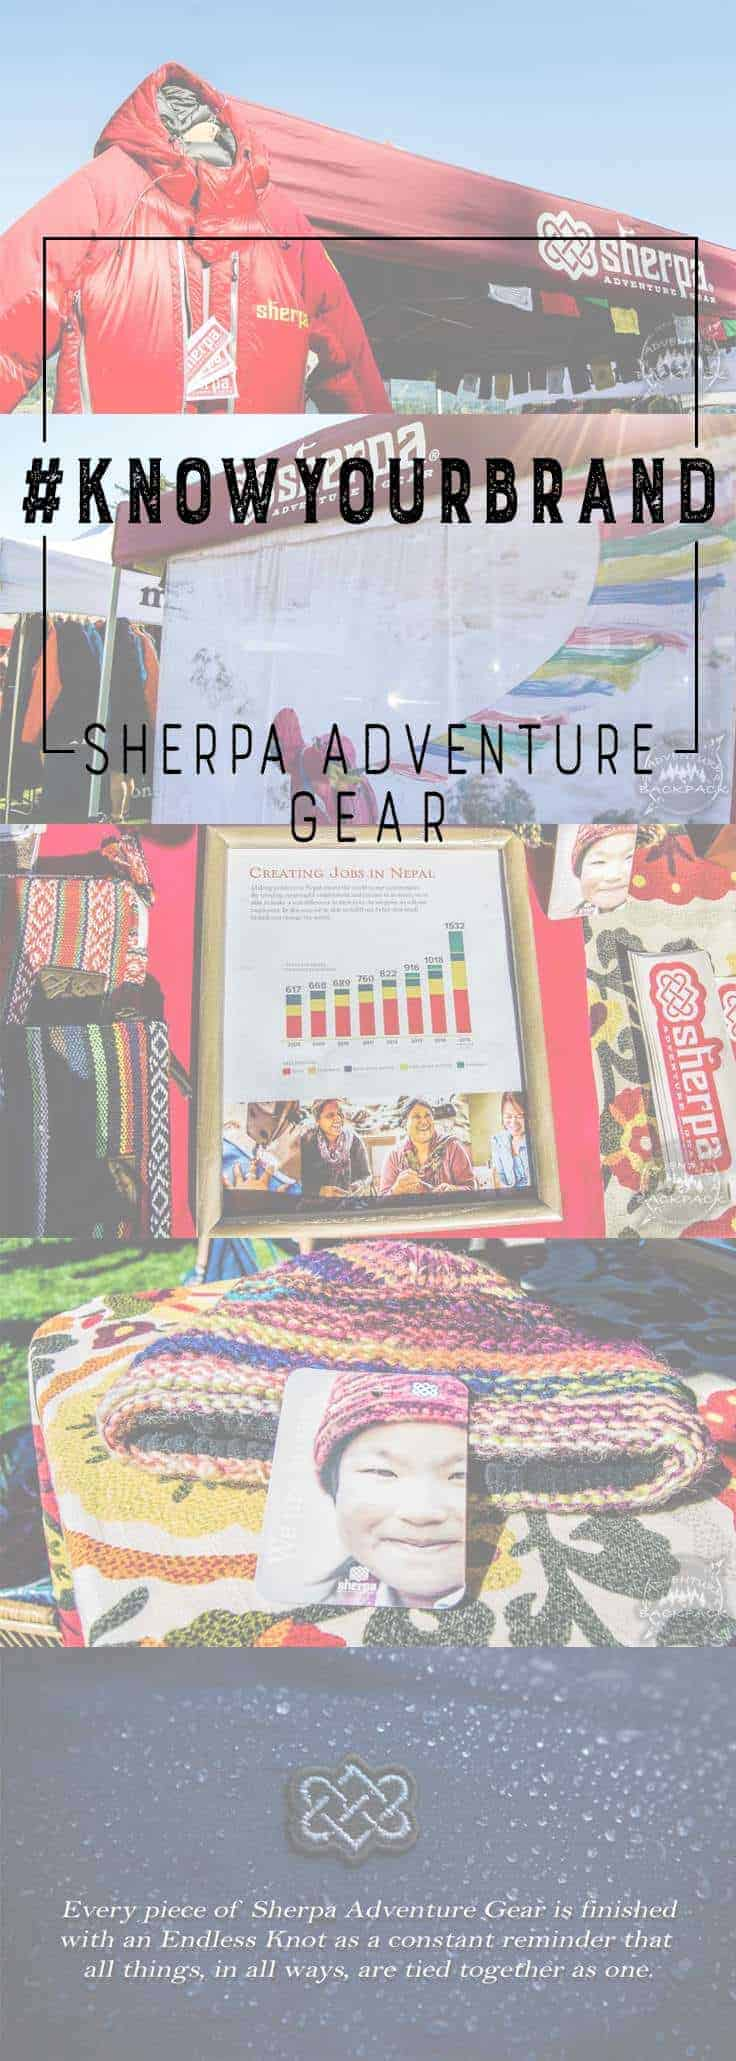 Sherpa adventure gear is more than just outerwear.  They actually help the sherpa culture by employing those involved in the culture but are not mountain guides at a fair wage and good working conditions.  outdoor gear   Jackets   Ski Jackets   Snowboard Jackets   Ski outfits   snowboard outfits